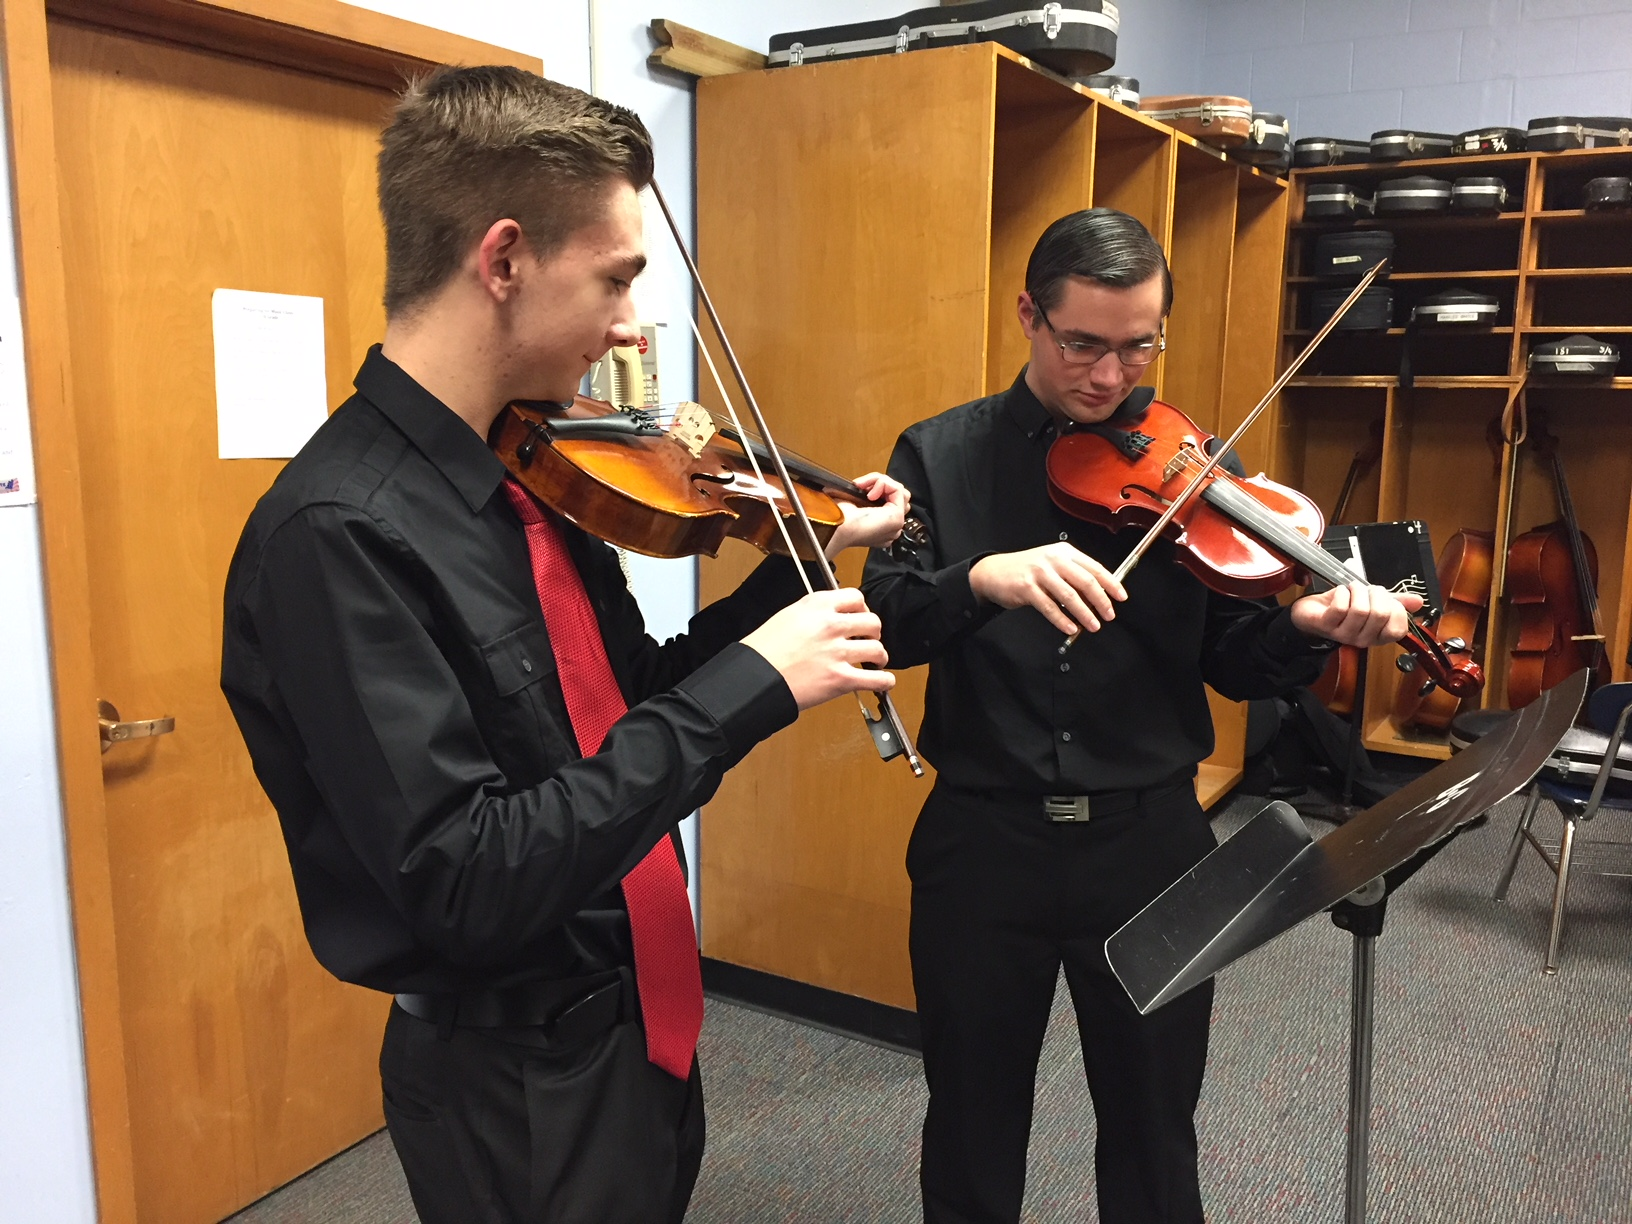 Two Violin Students